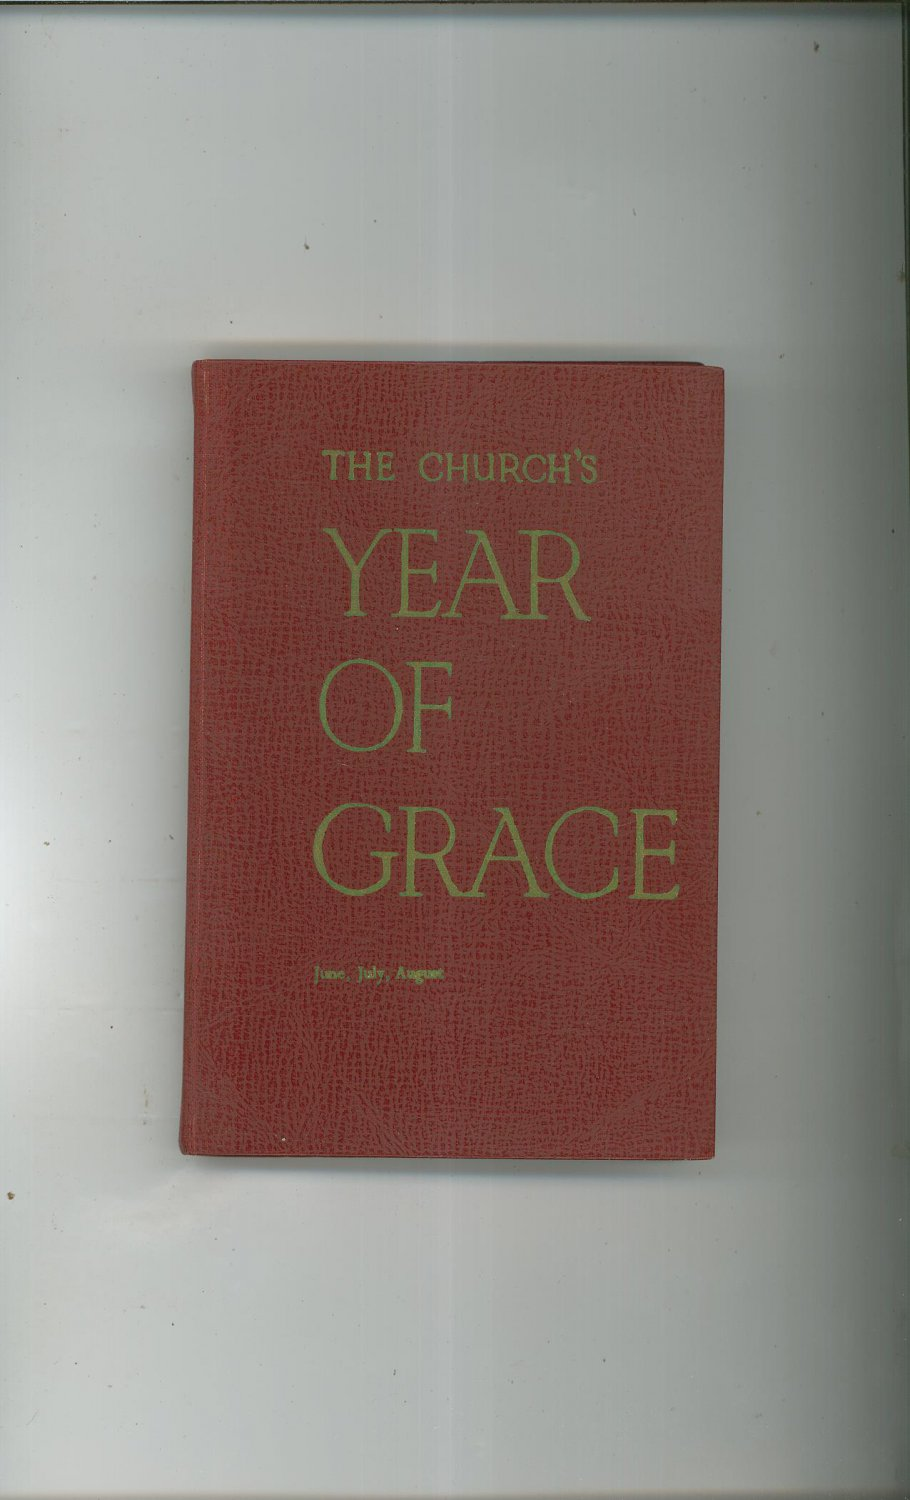 Vintage The Church's Year Of Grace June July August Volume IV Parsch Liturgical Press